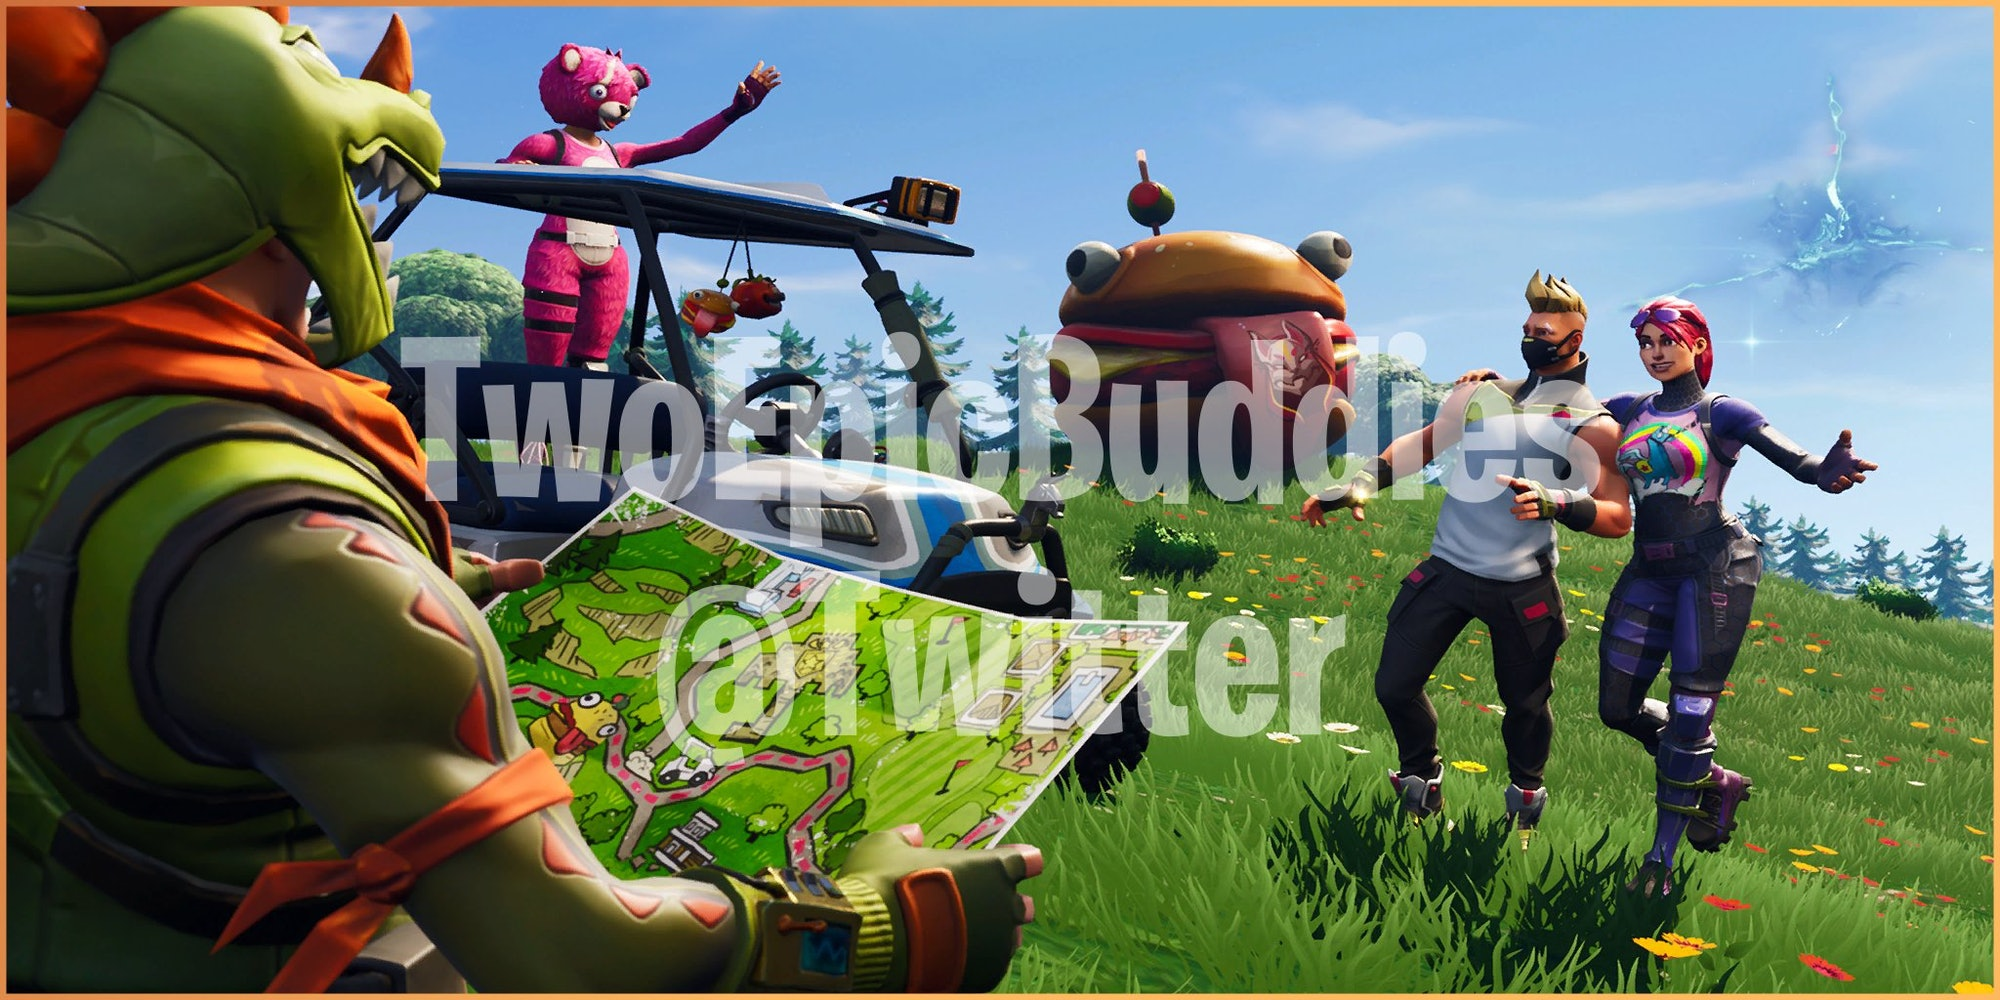 'Fortnite' Week 1 Road Trip Challenge Loading Screen